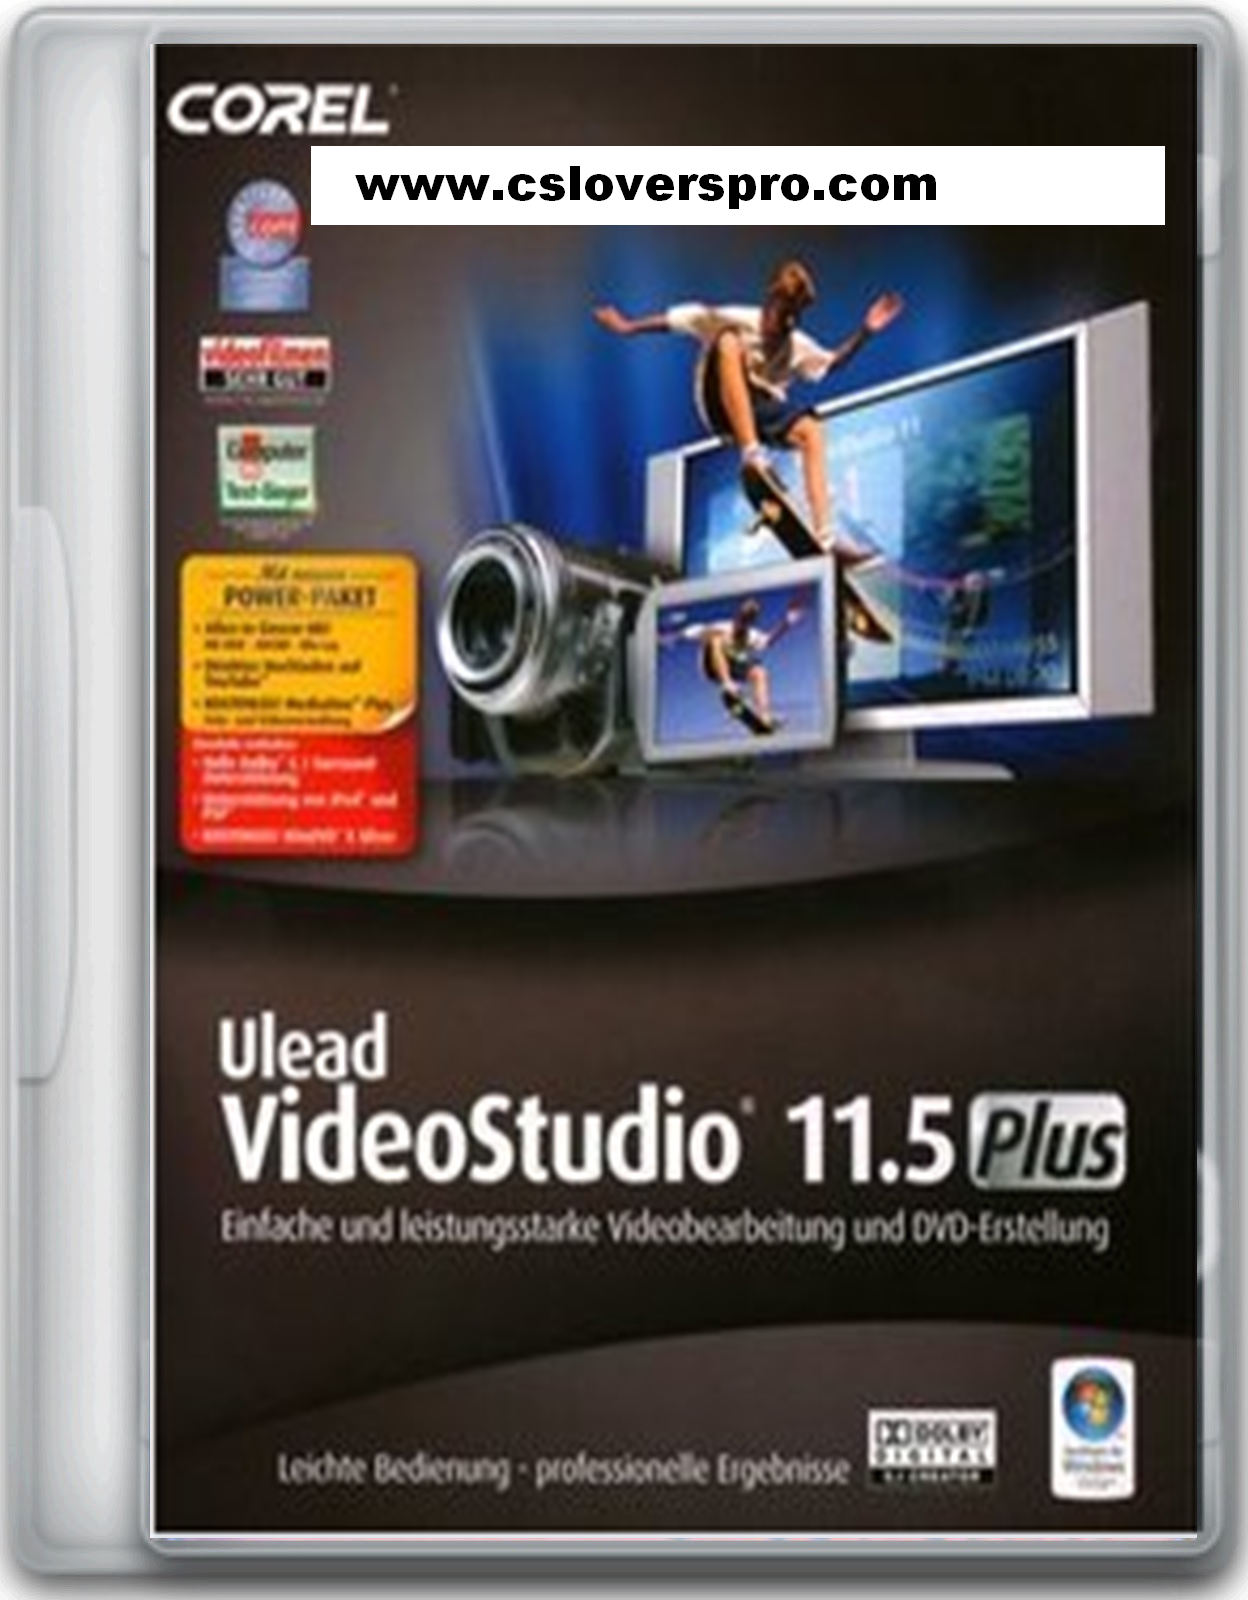 Ulead videostudio 11.5 plus